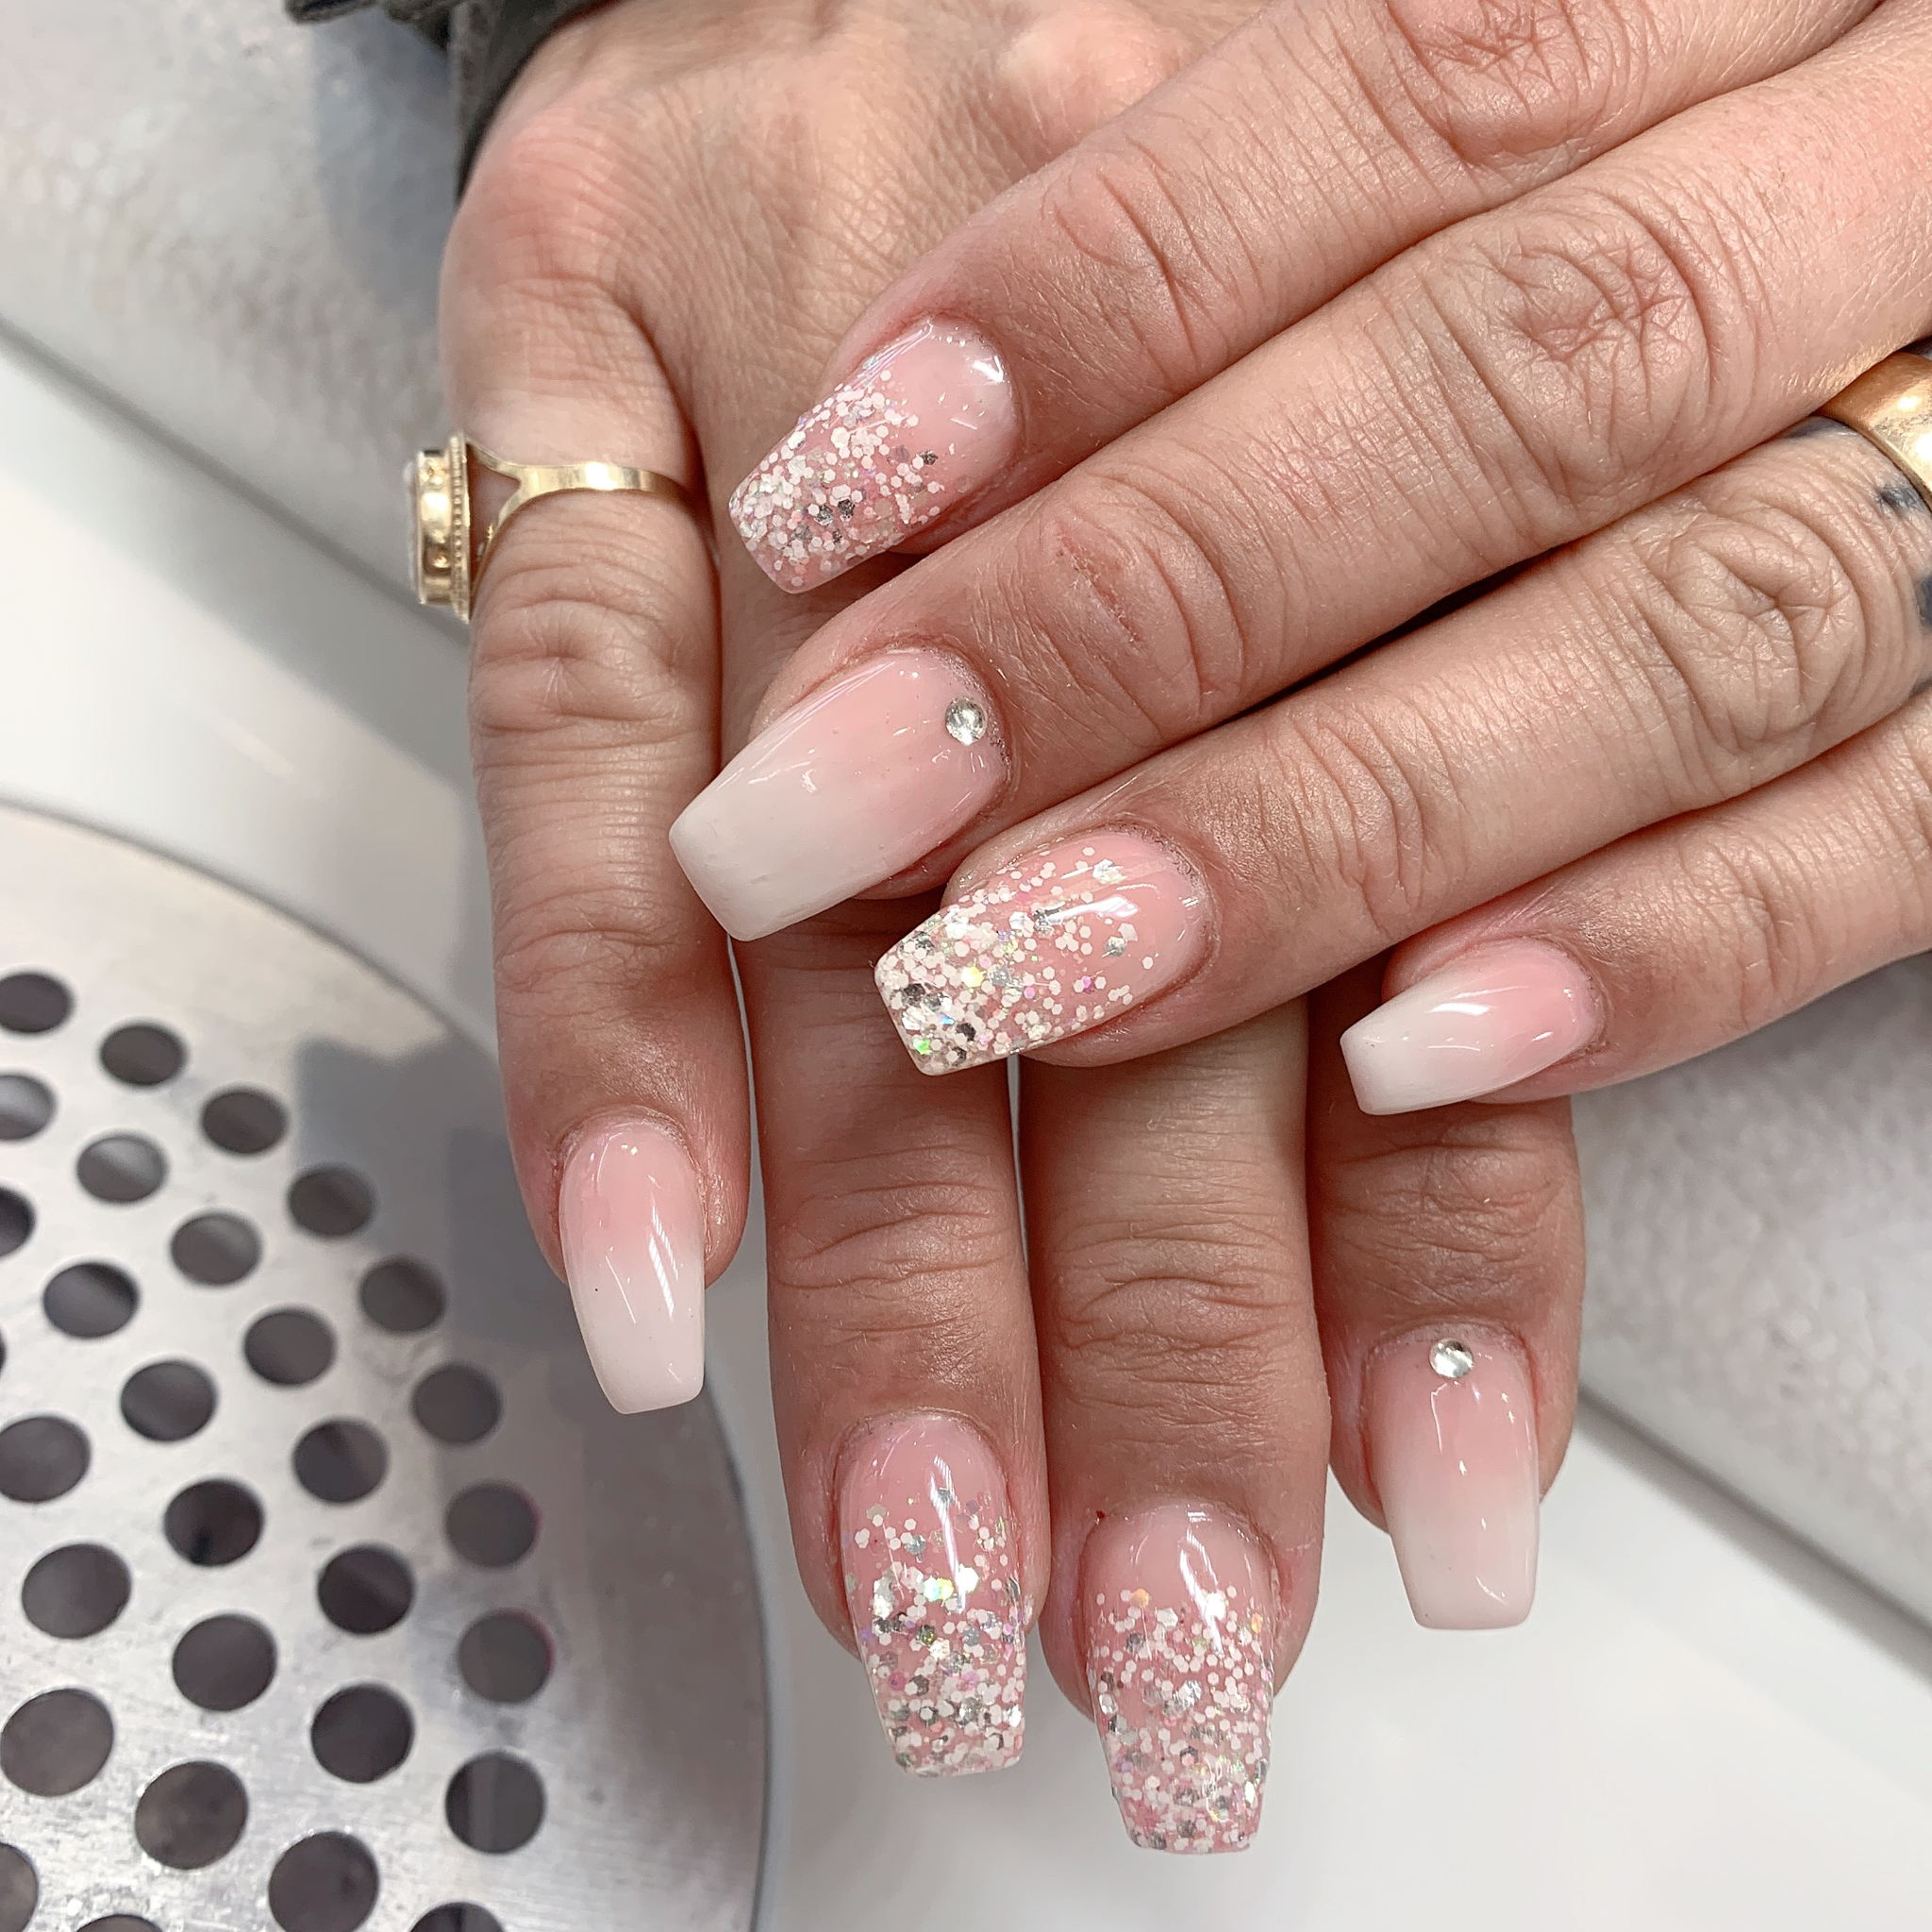 Pin by Биляна Джамбазова on My Nails in 2020 | My nails